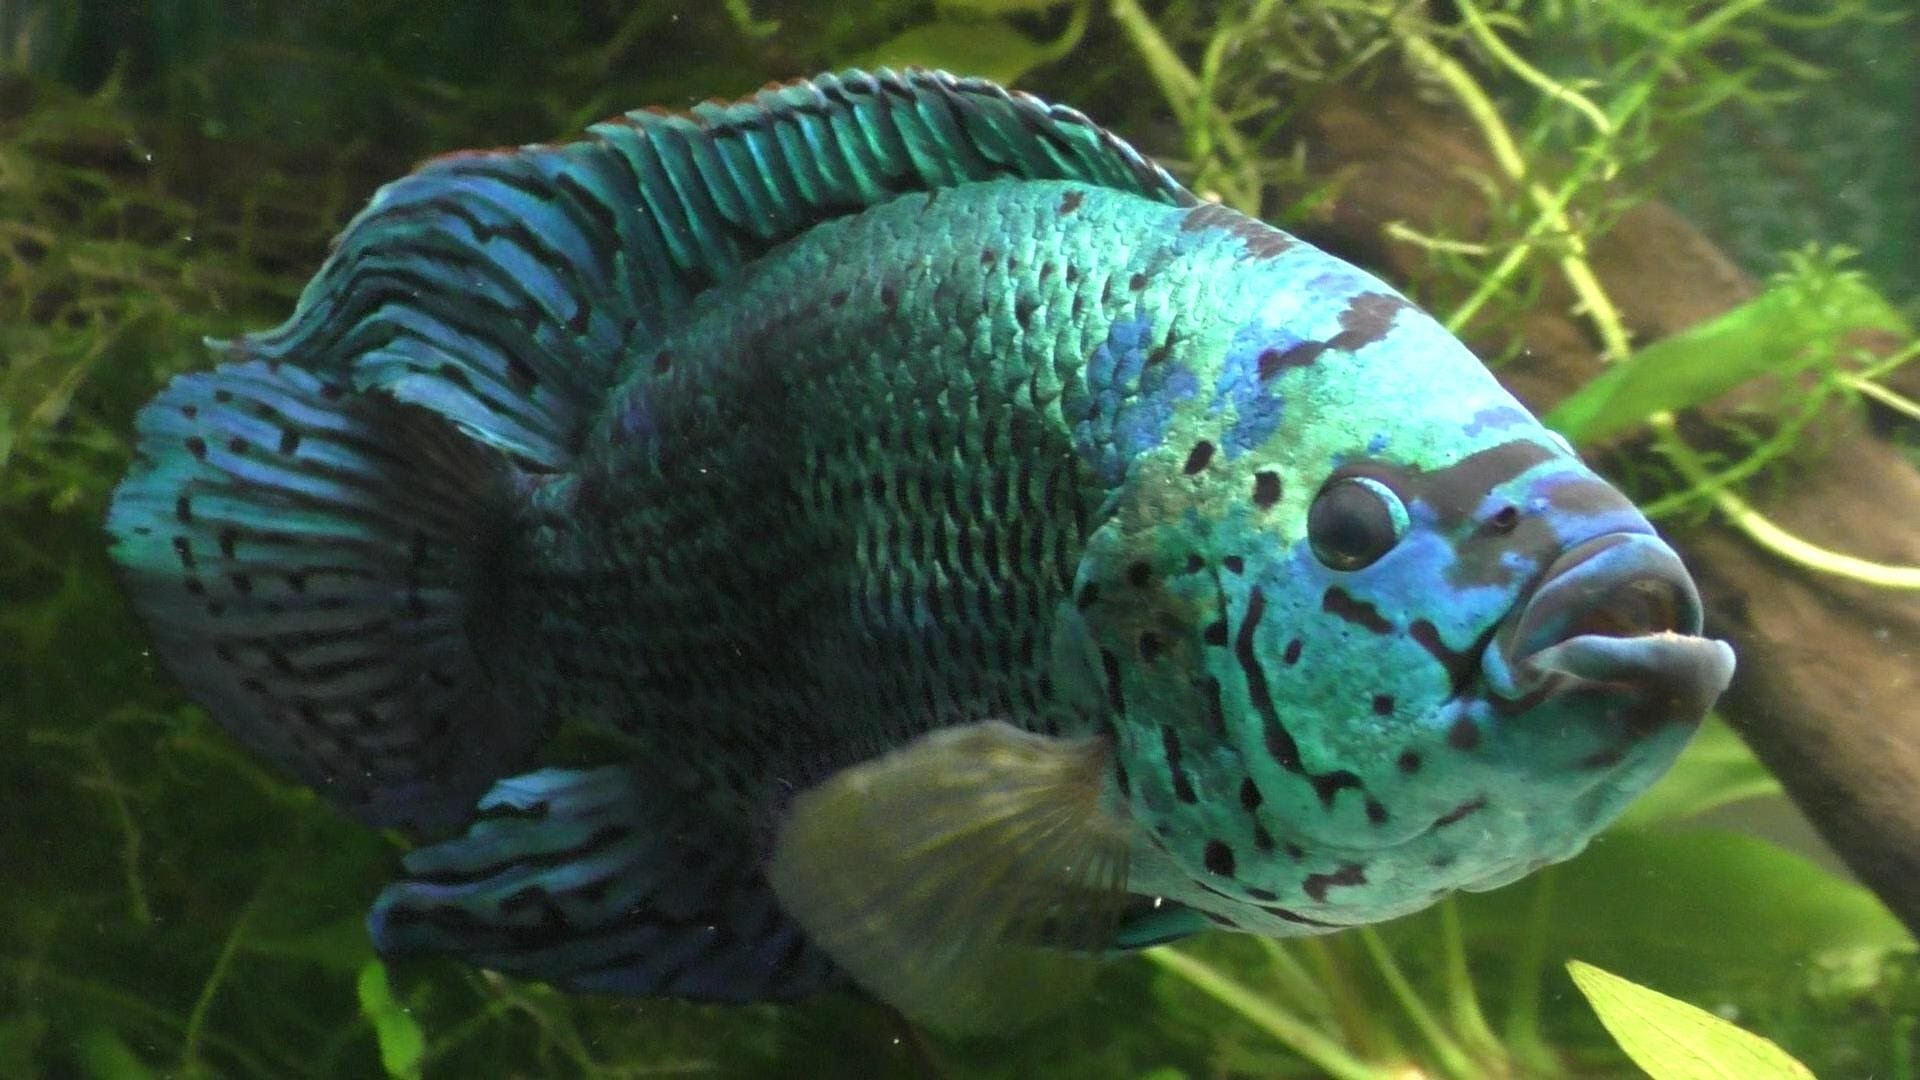 Hand Feeding Worms To My Electric Blue Jack Dempsey Freshwater